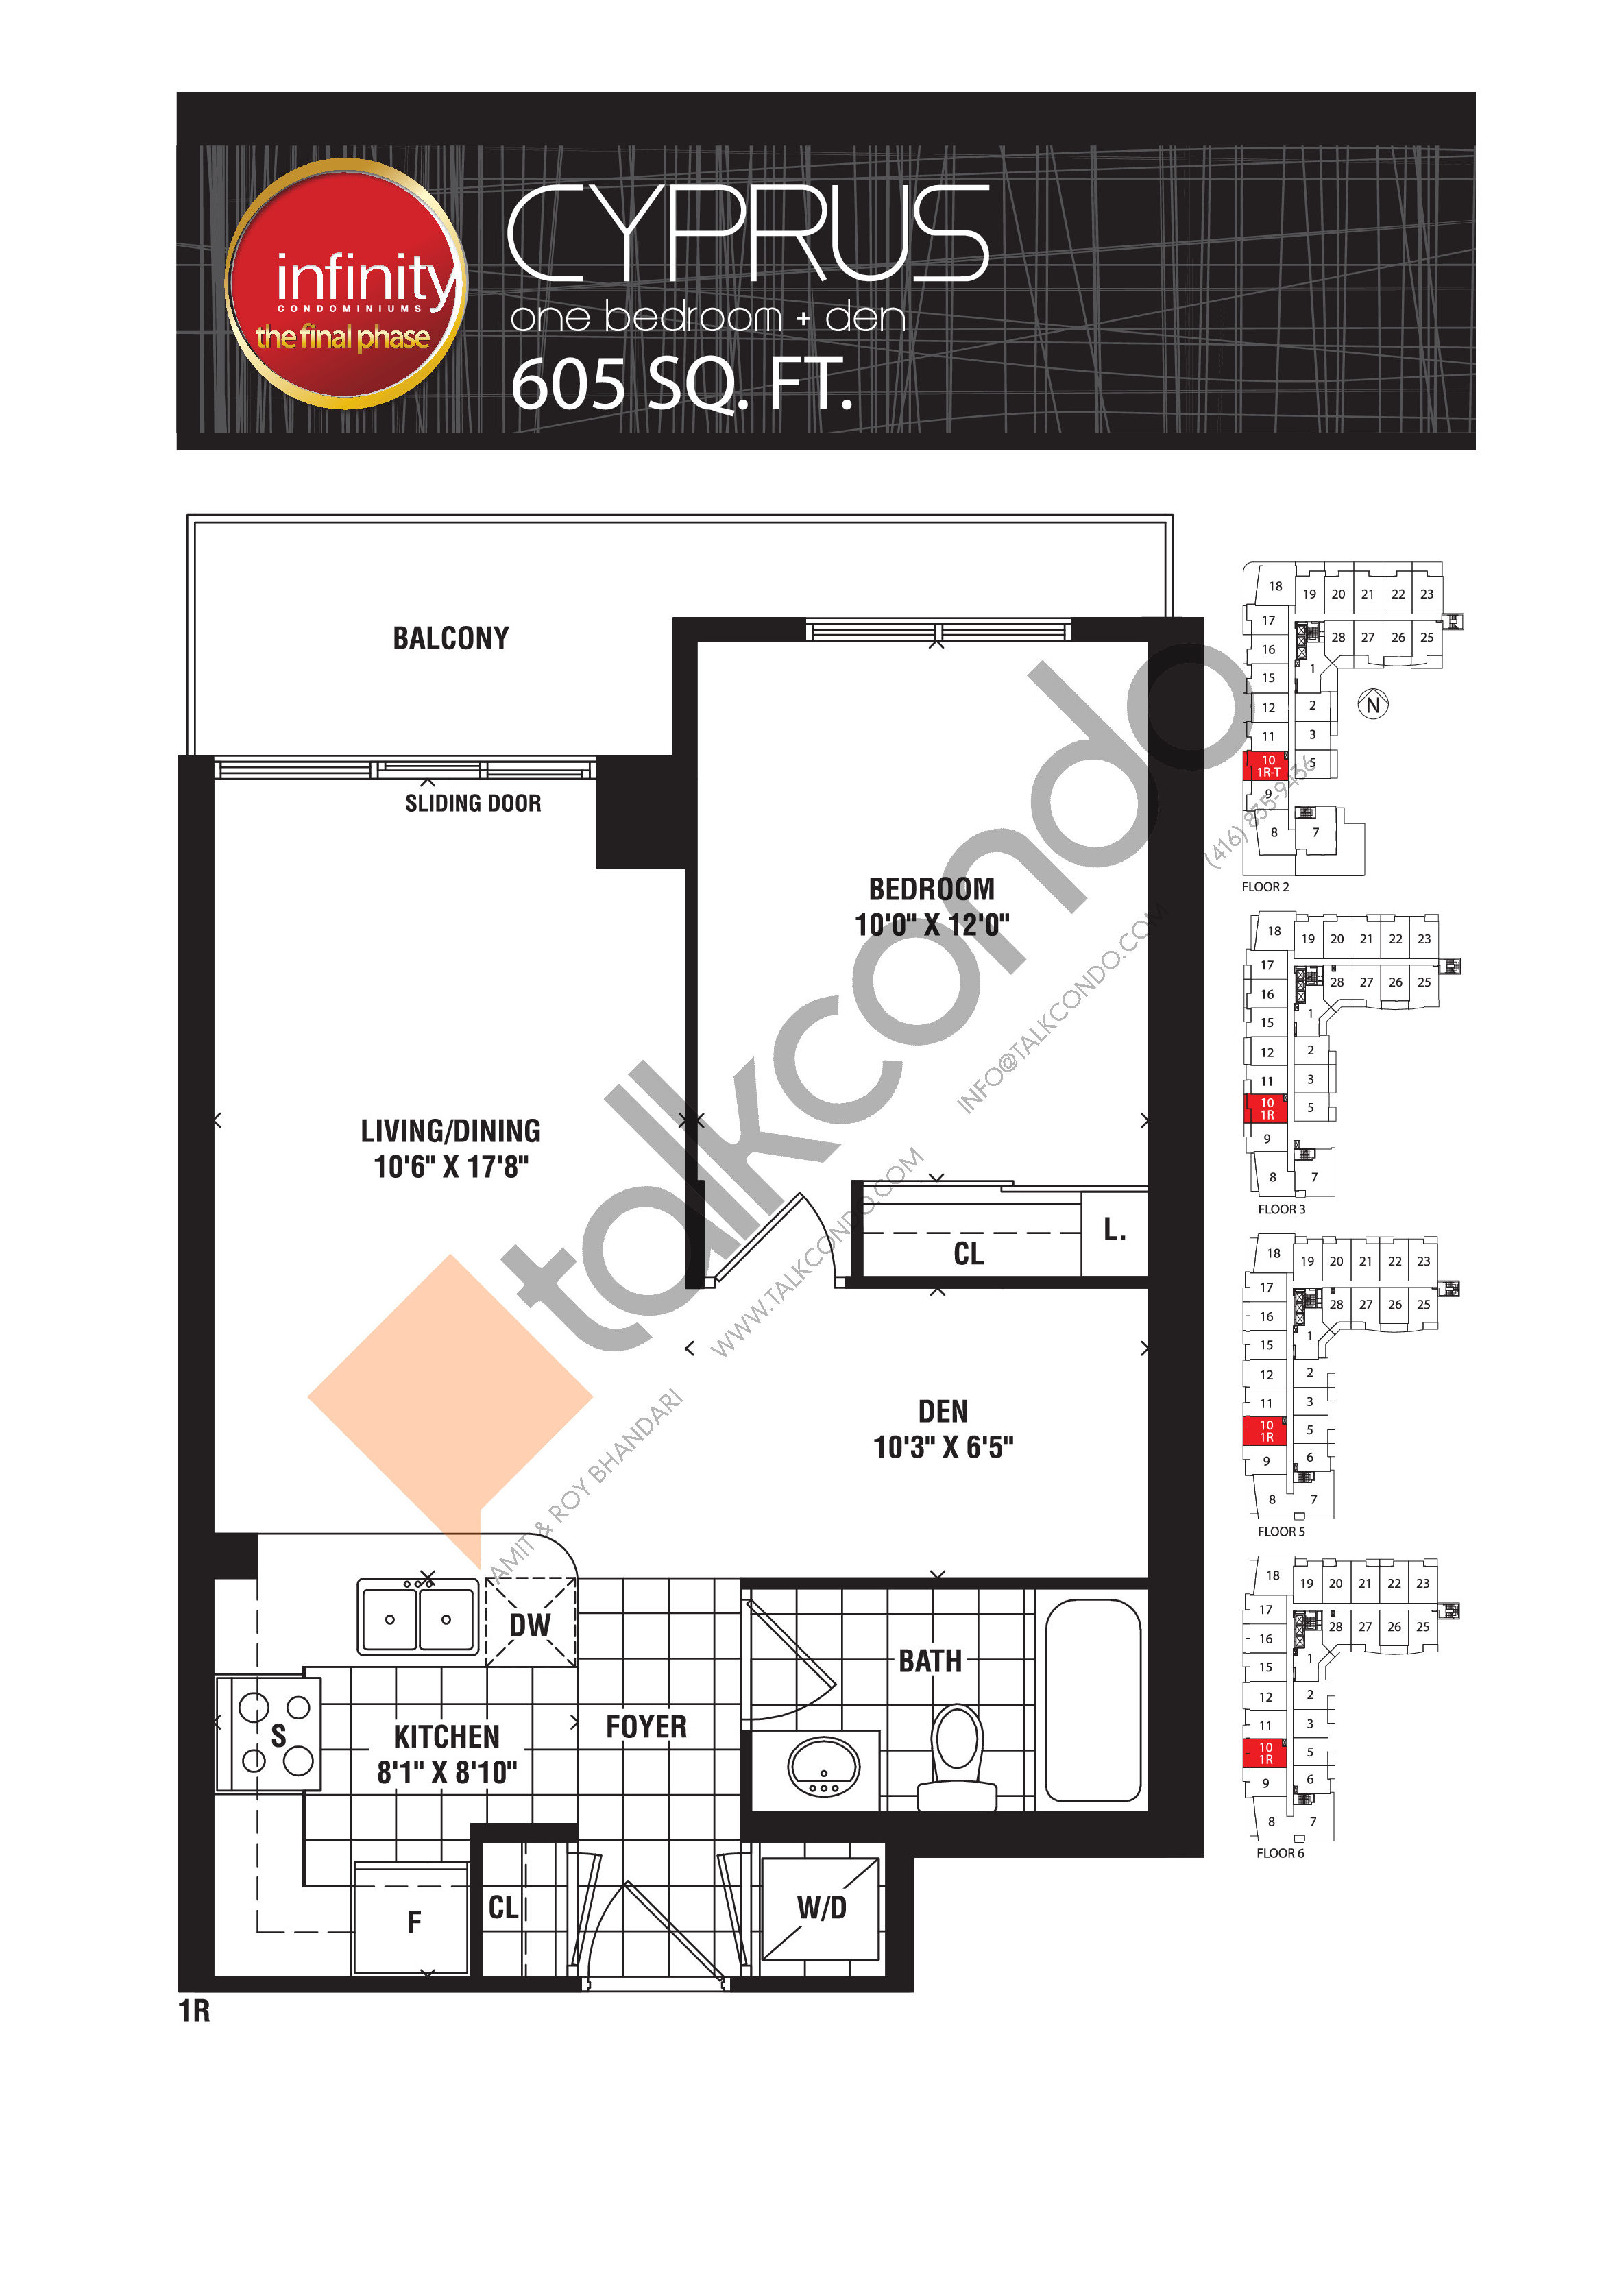 Cyprus Floor Plan at Infinity: The Final Phase Condos - 605 sq.ft